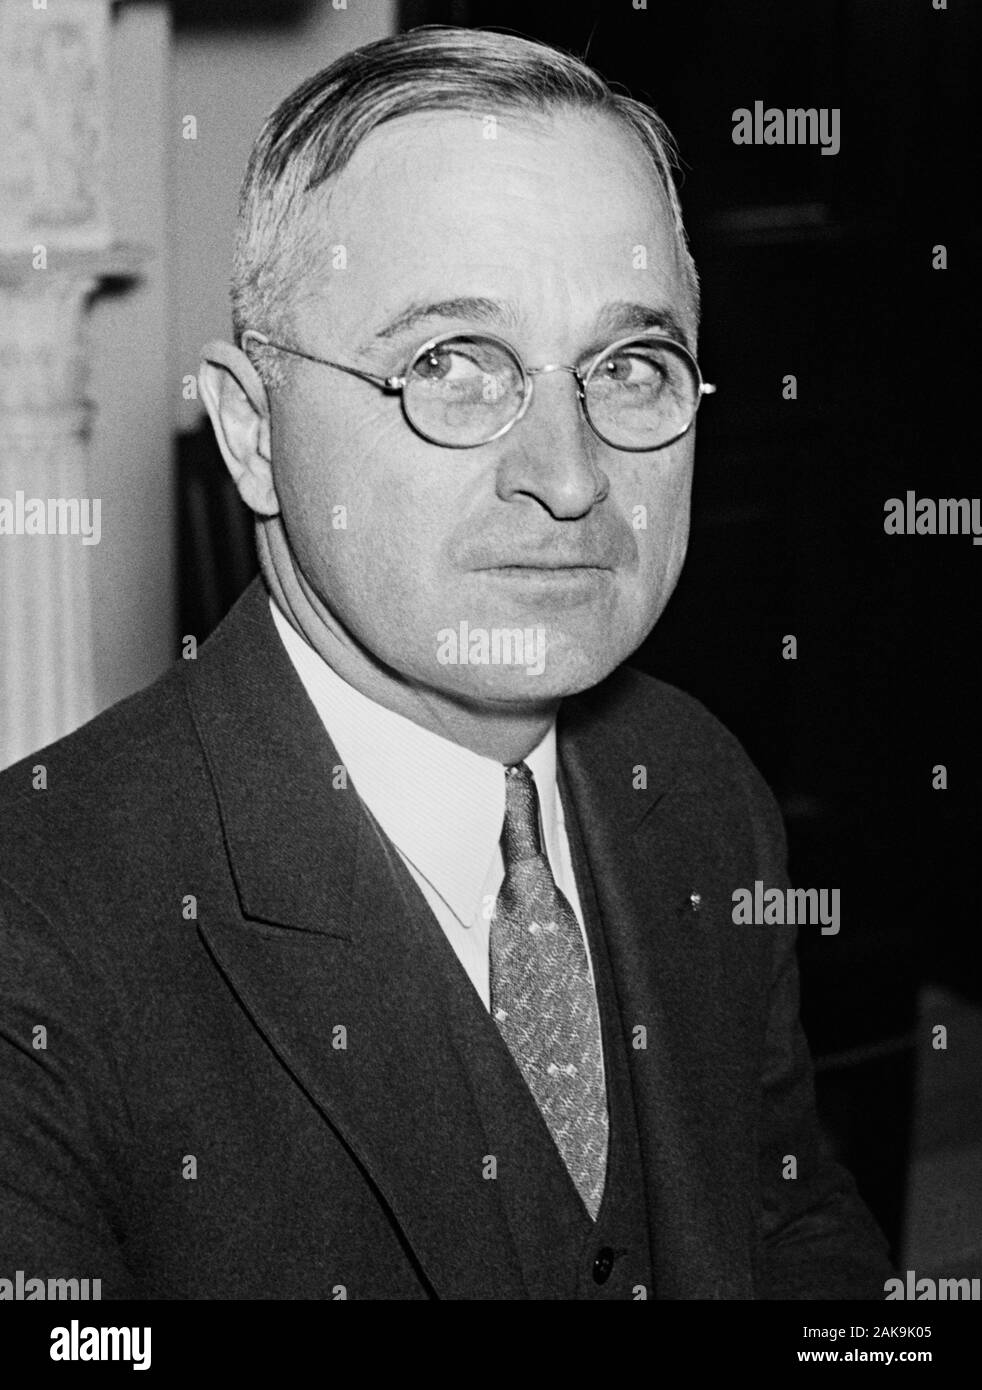 Vintage portrait photo of Missouri Senator - and future President - Harry S Truman. Photo circa 1935 by Harris & Ewing. Truman (1884 – 1972) would later become the 33rd US President (1945 – 1953). Stock Photo